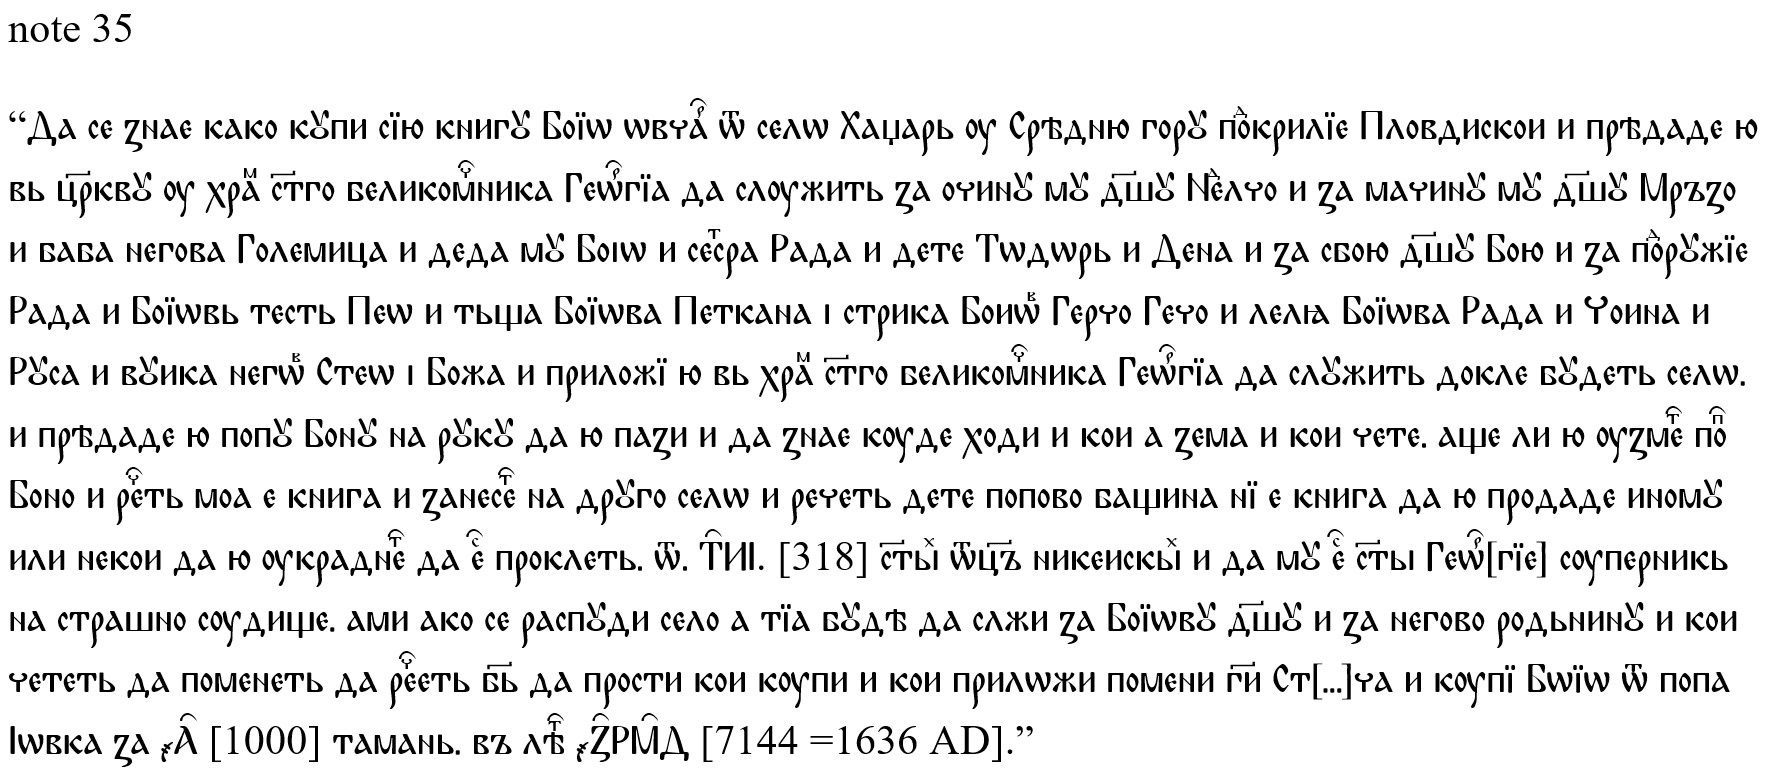 Marginal Notes in South Slavic Written Culture | Cairn.info